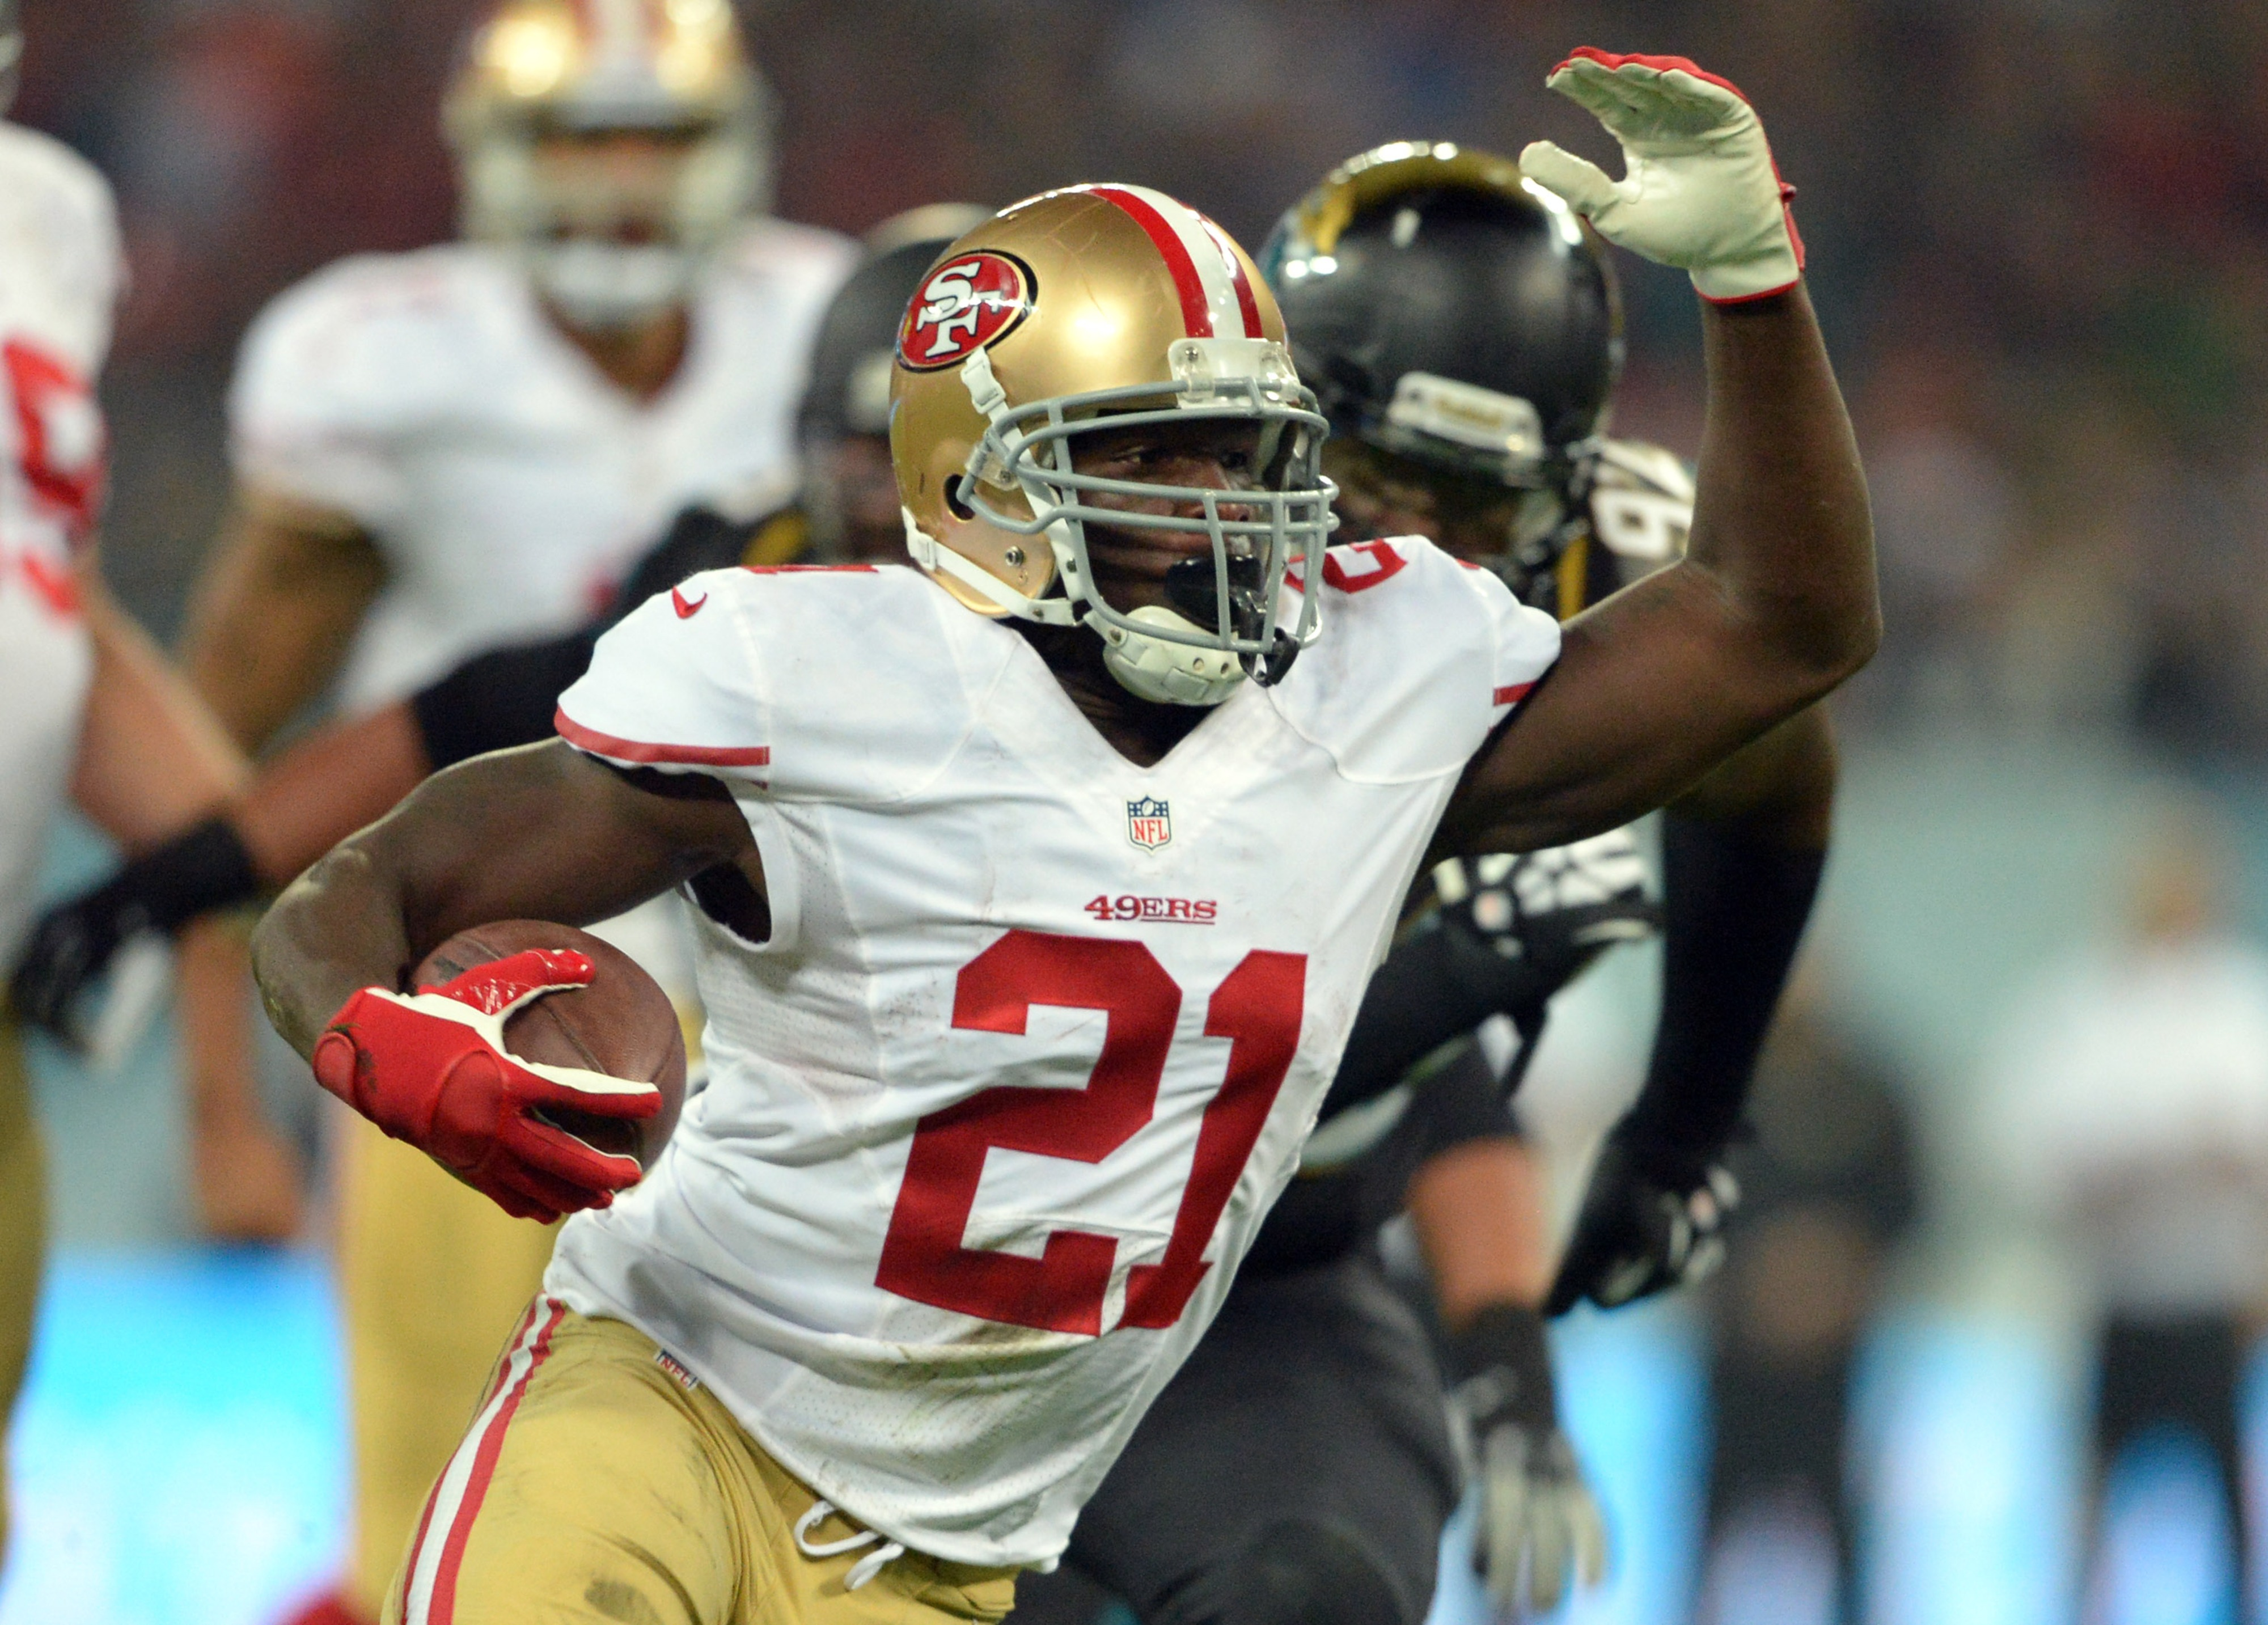 NFL picks and predictions 2013, Panthers vs. 49ers: San Francisco favored by experts